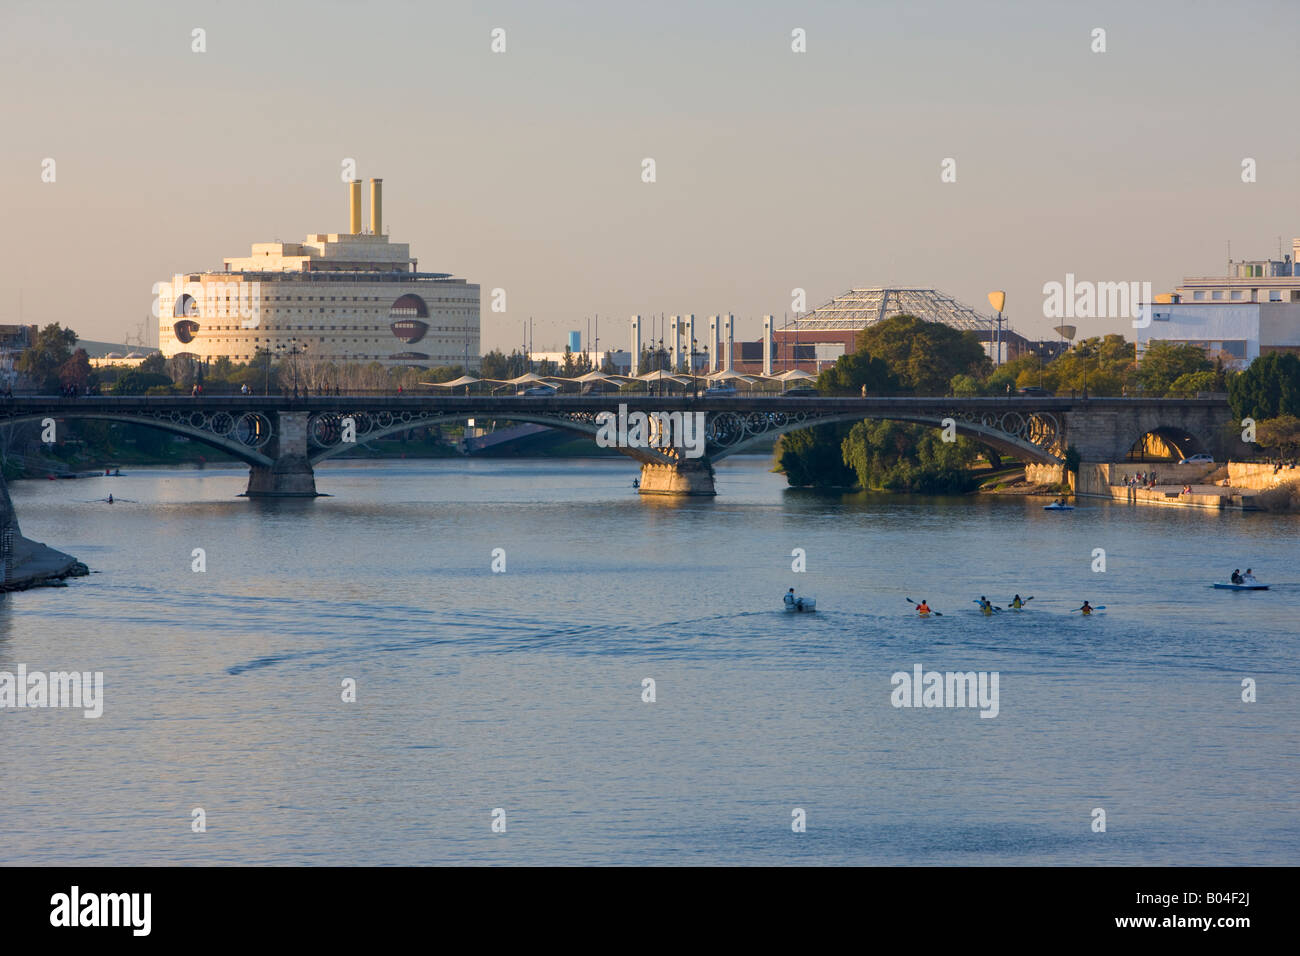 Torre Triana, on Isle de la Cartuja, and Rio Guadalquivir (River), City of Sevilla (Seville), Province of Sevilla - Stock Image